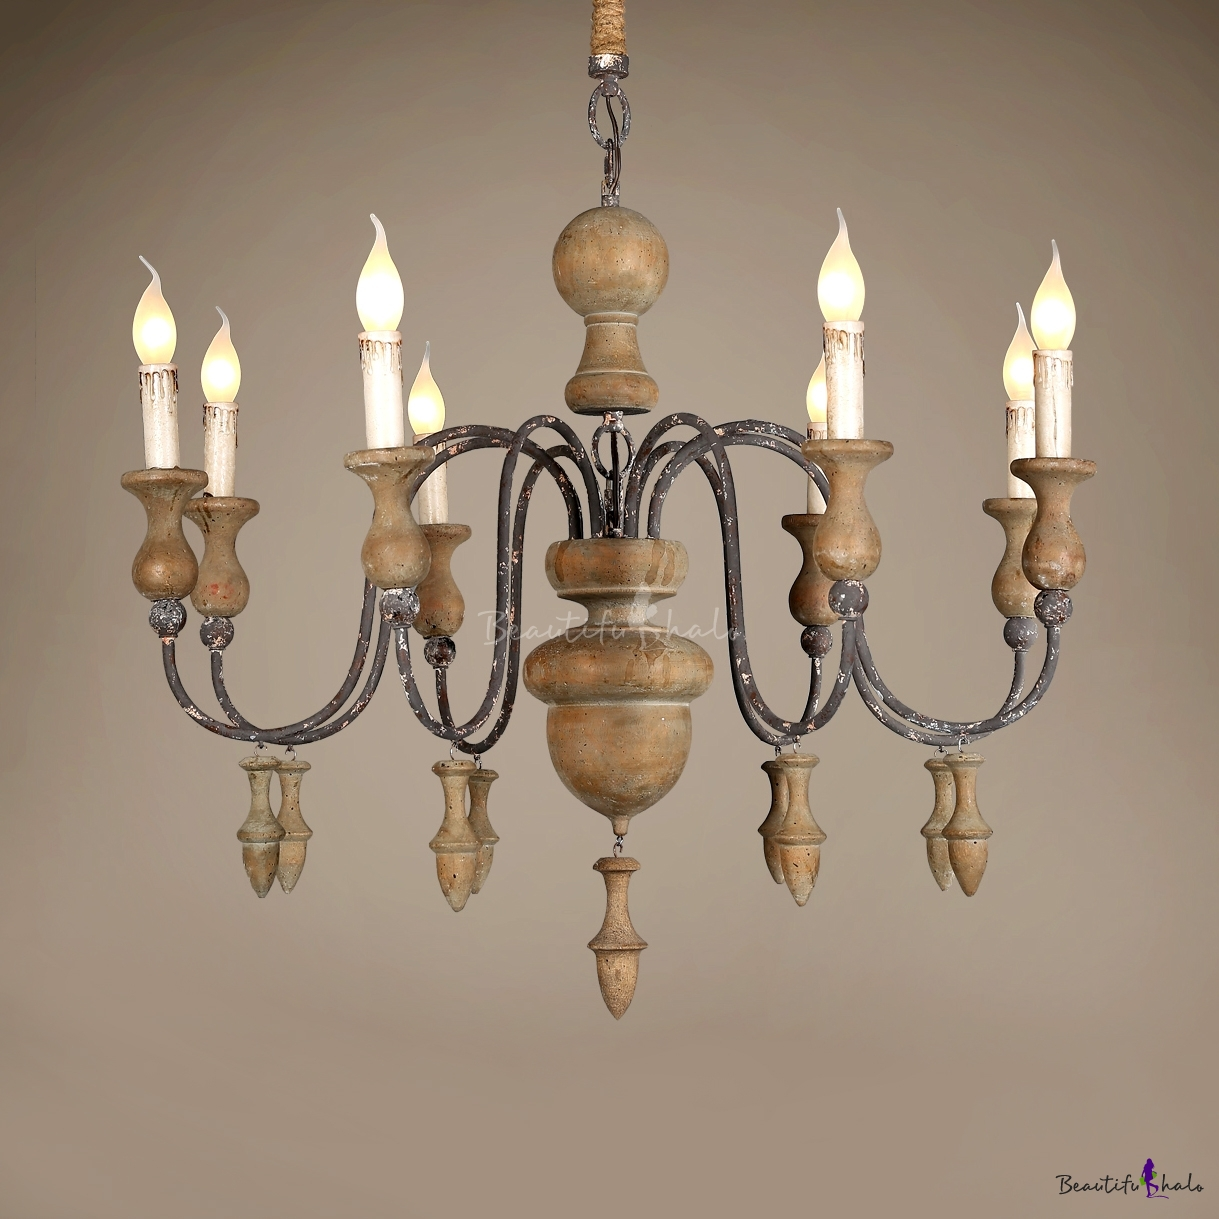 European Style Pendant Lamp With Candle 8 Lights Wood And Metal Chandelier Light For Coffee